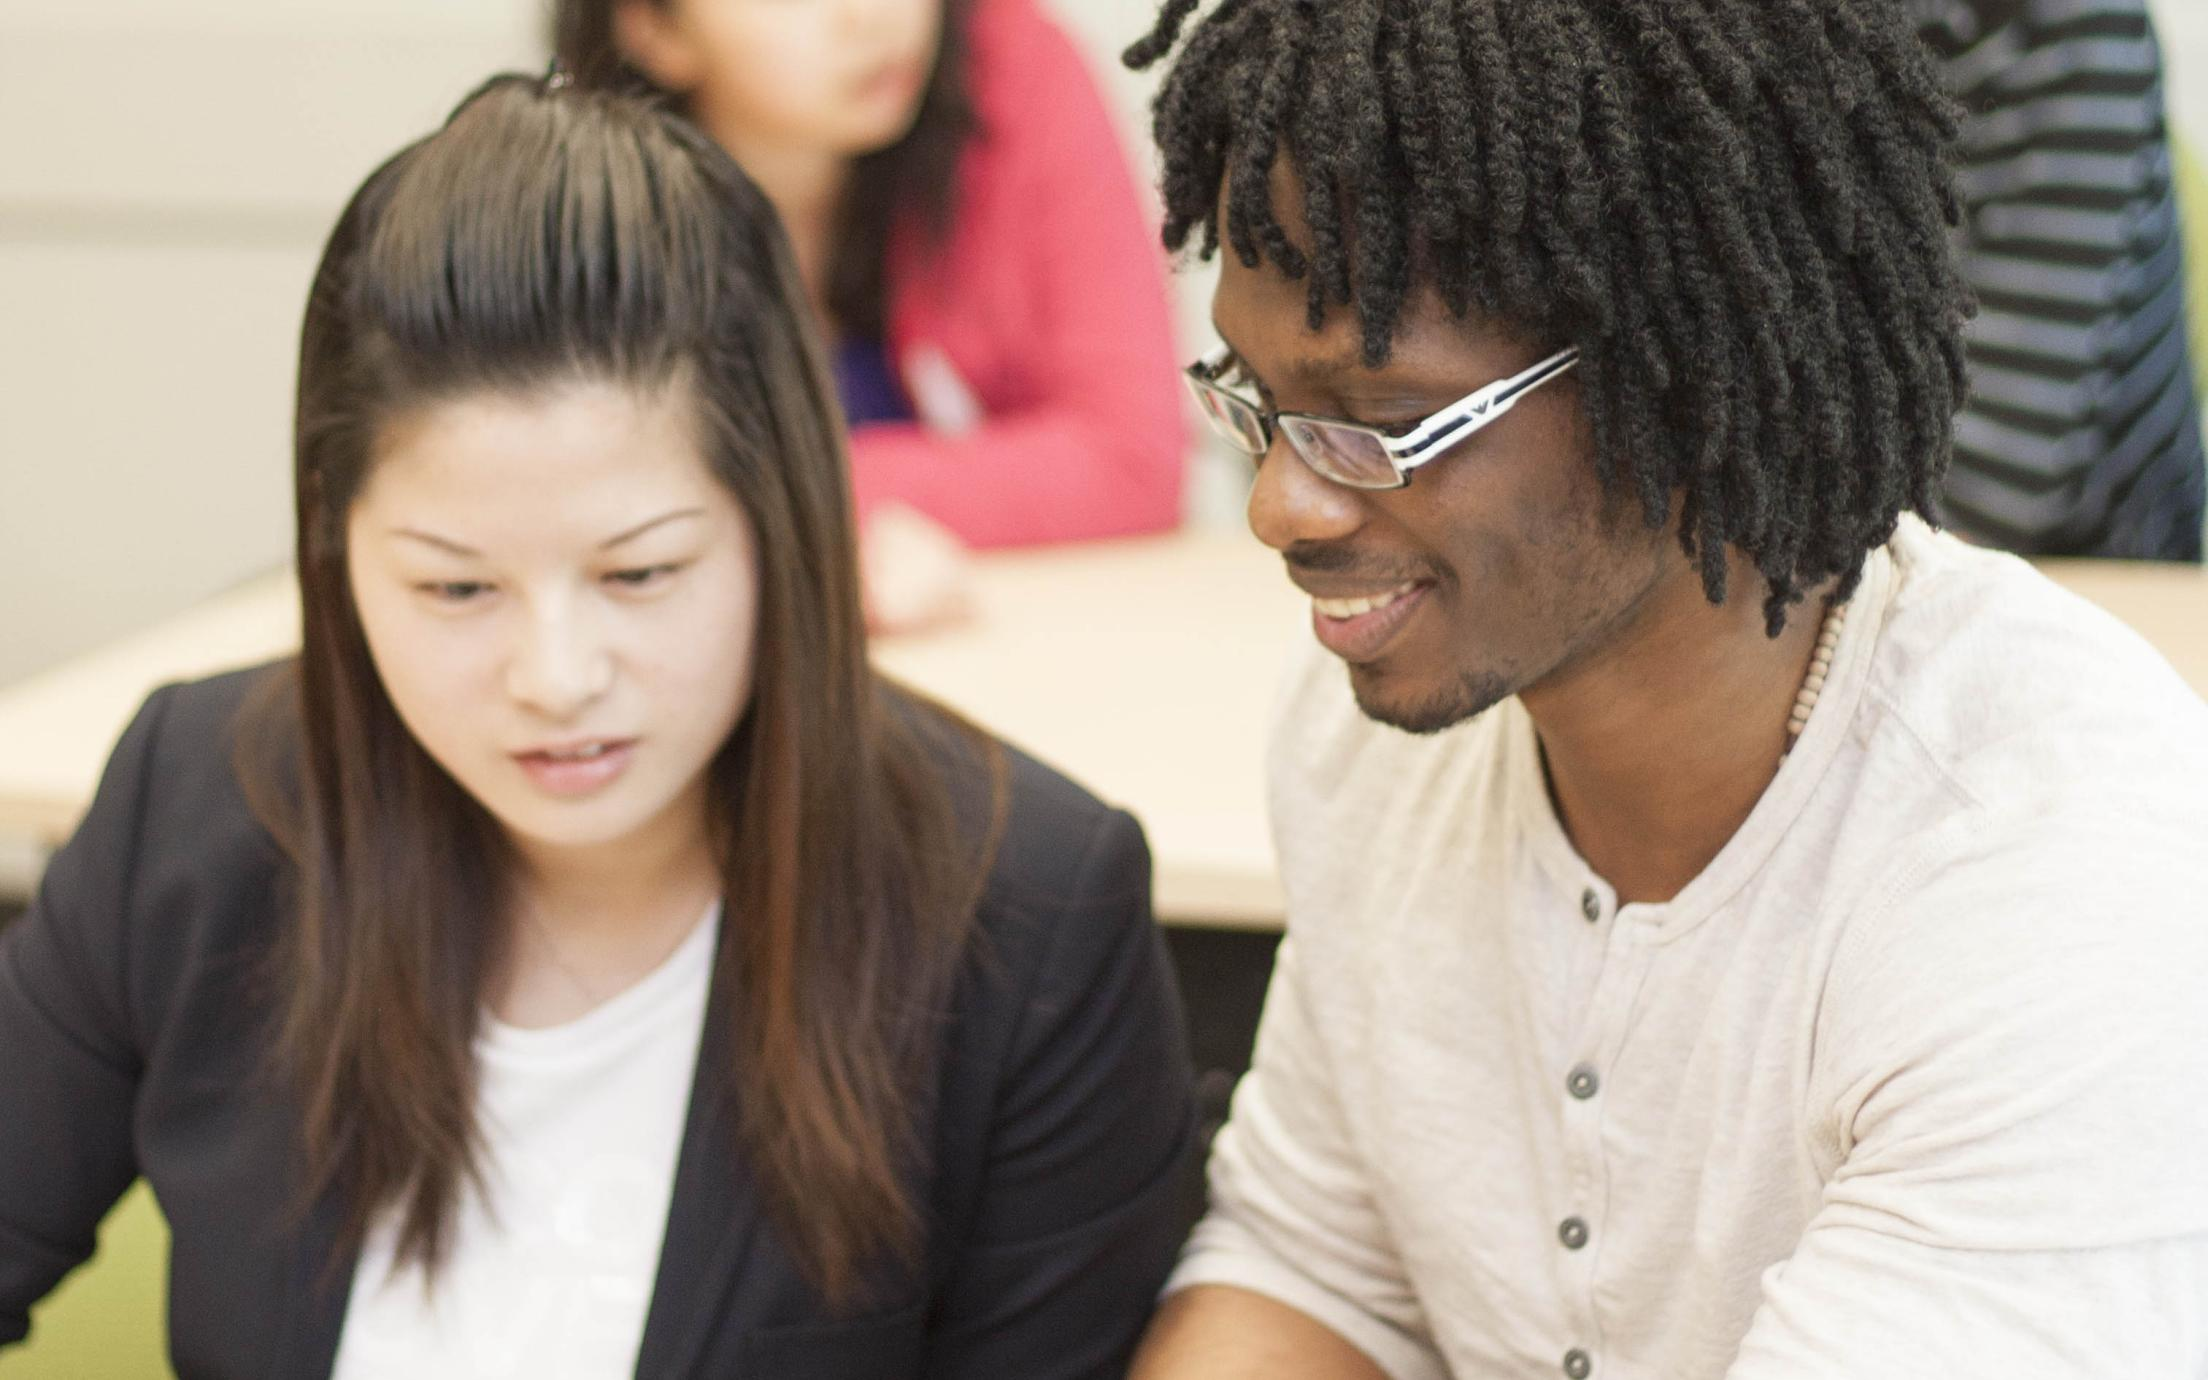 A male student of the Bachelor of Arts, Minor in Media Studies program talking to a fellow student